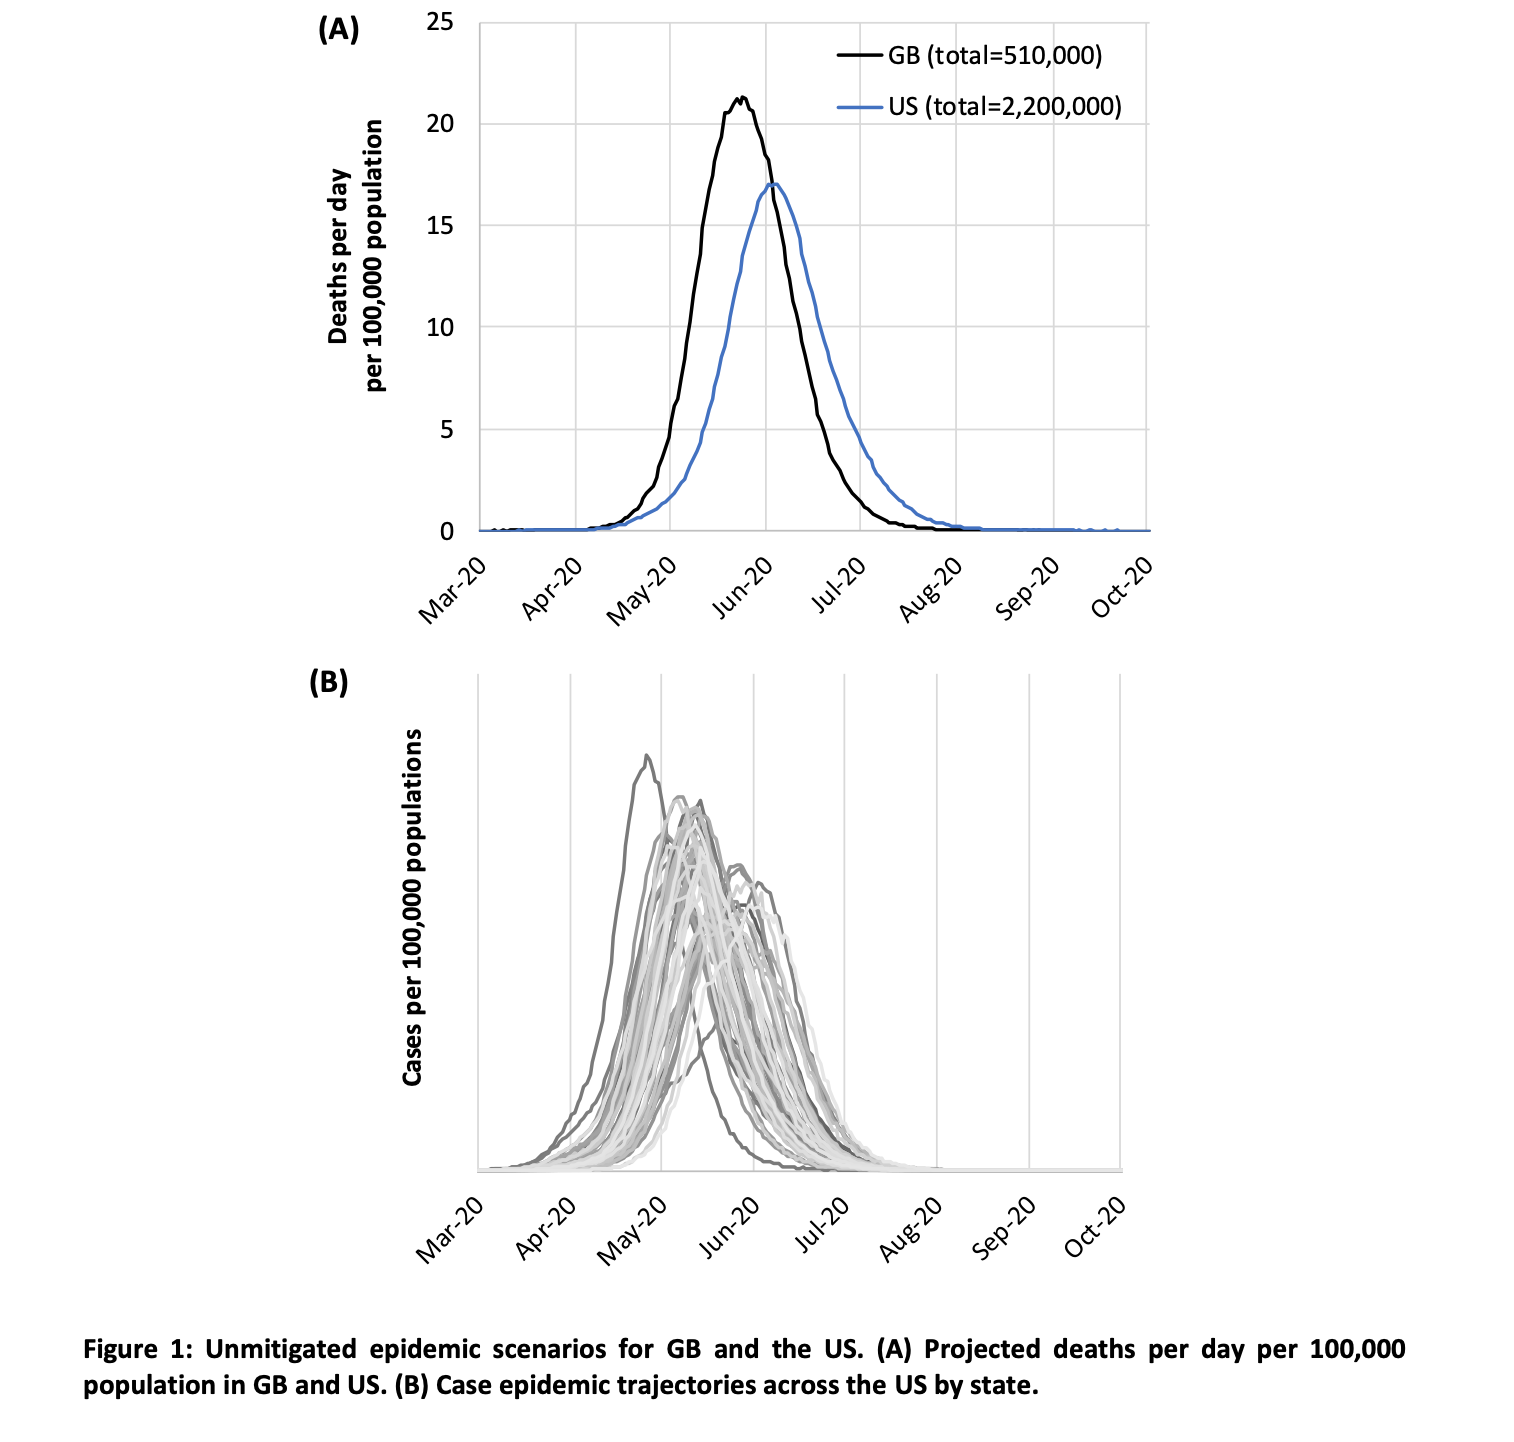 Unmitigated epidemic scenarios for GB and the US